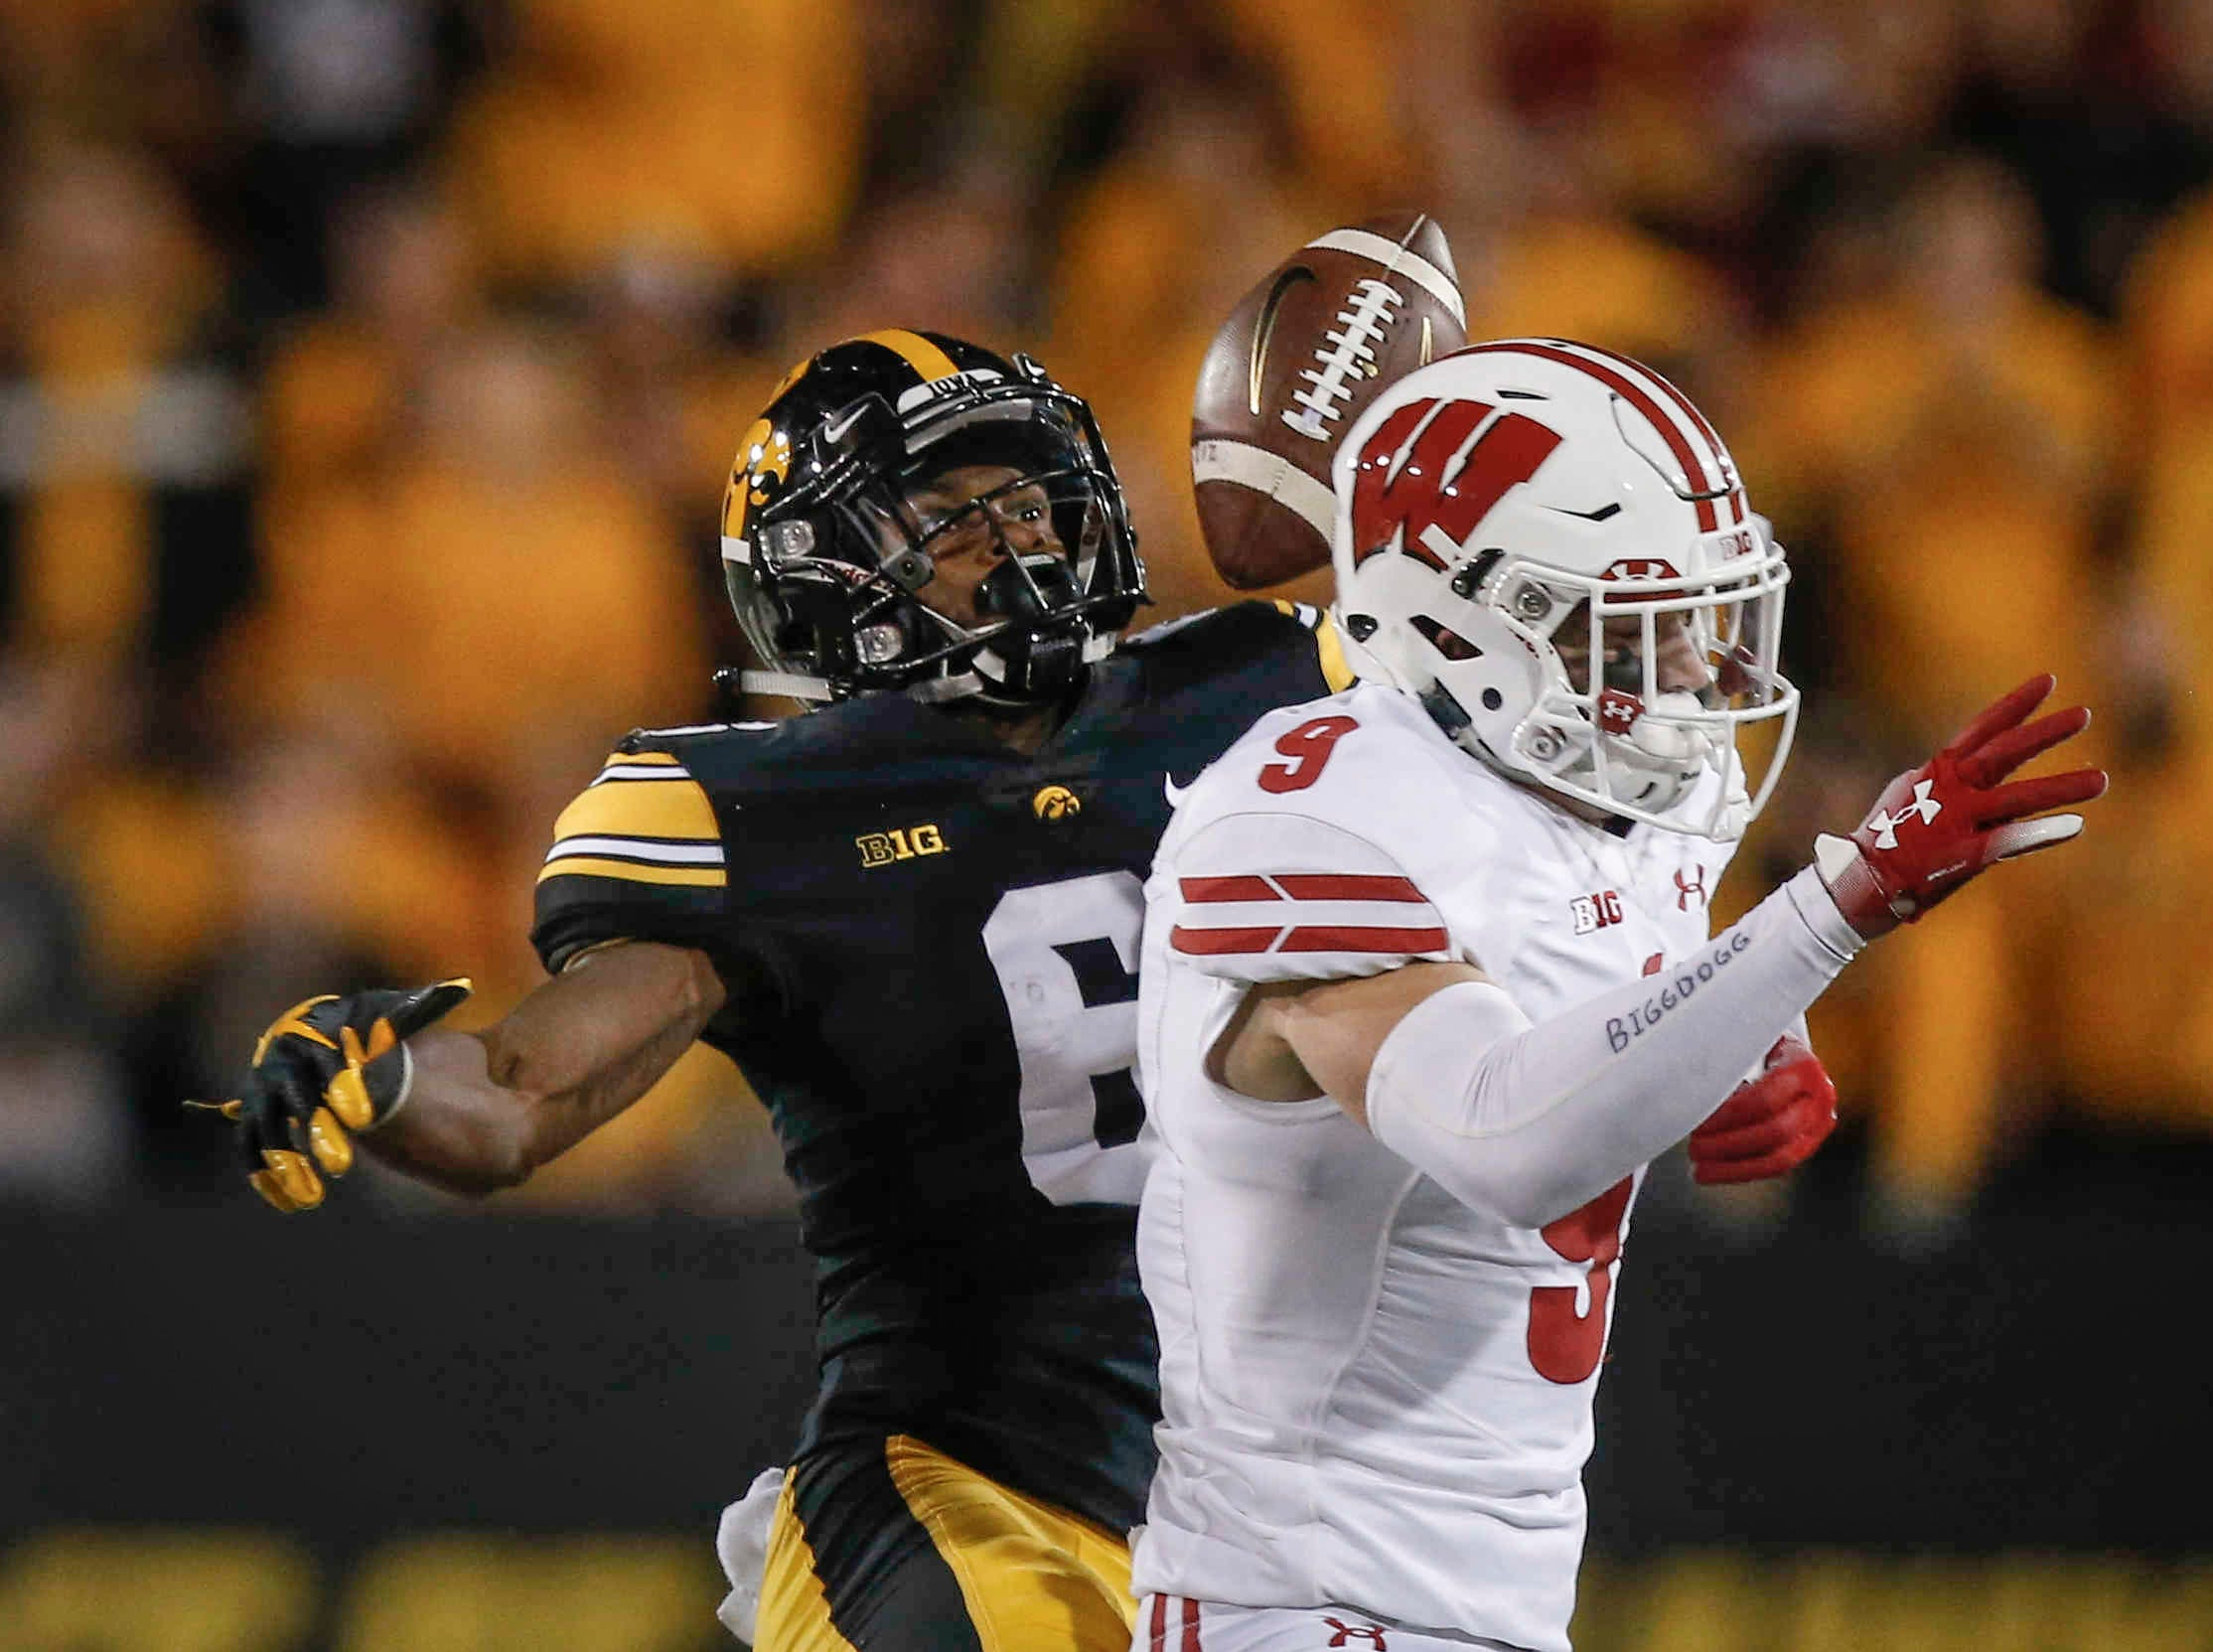 Iowa receiver Ihmir Smith-Marsette loses the ball after being hit by Wisconsin safety Scott Nelson on Saturday, Sept. 22, 2018, at Kinnick Stadium in Iowa City.